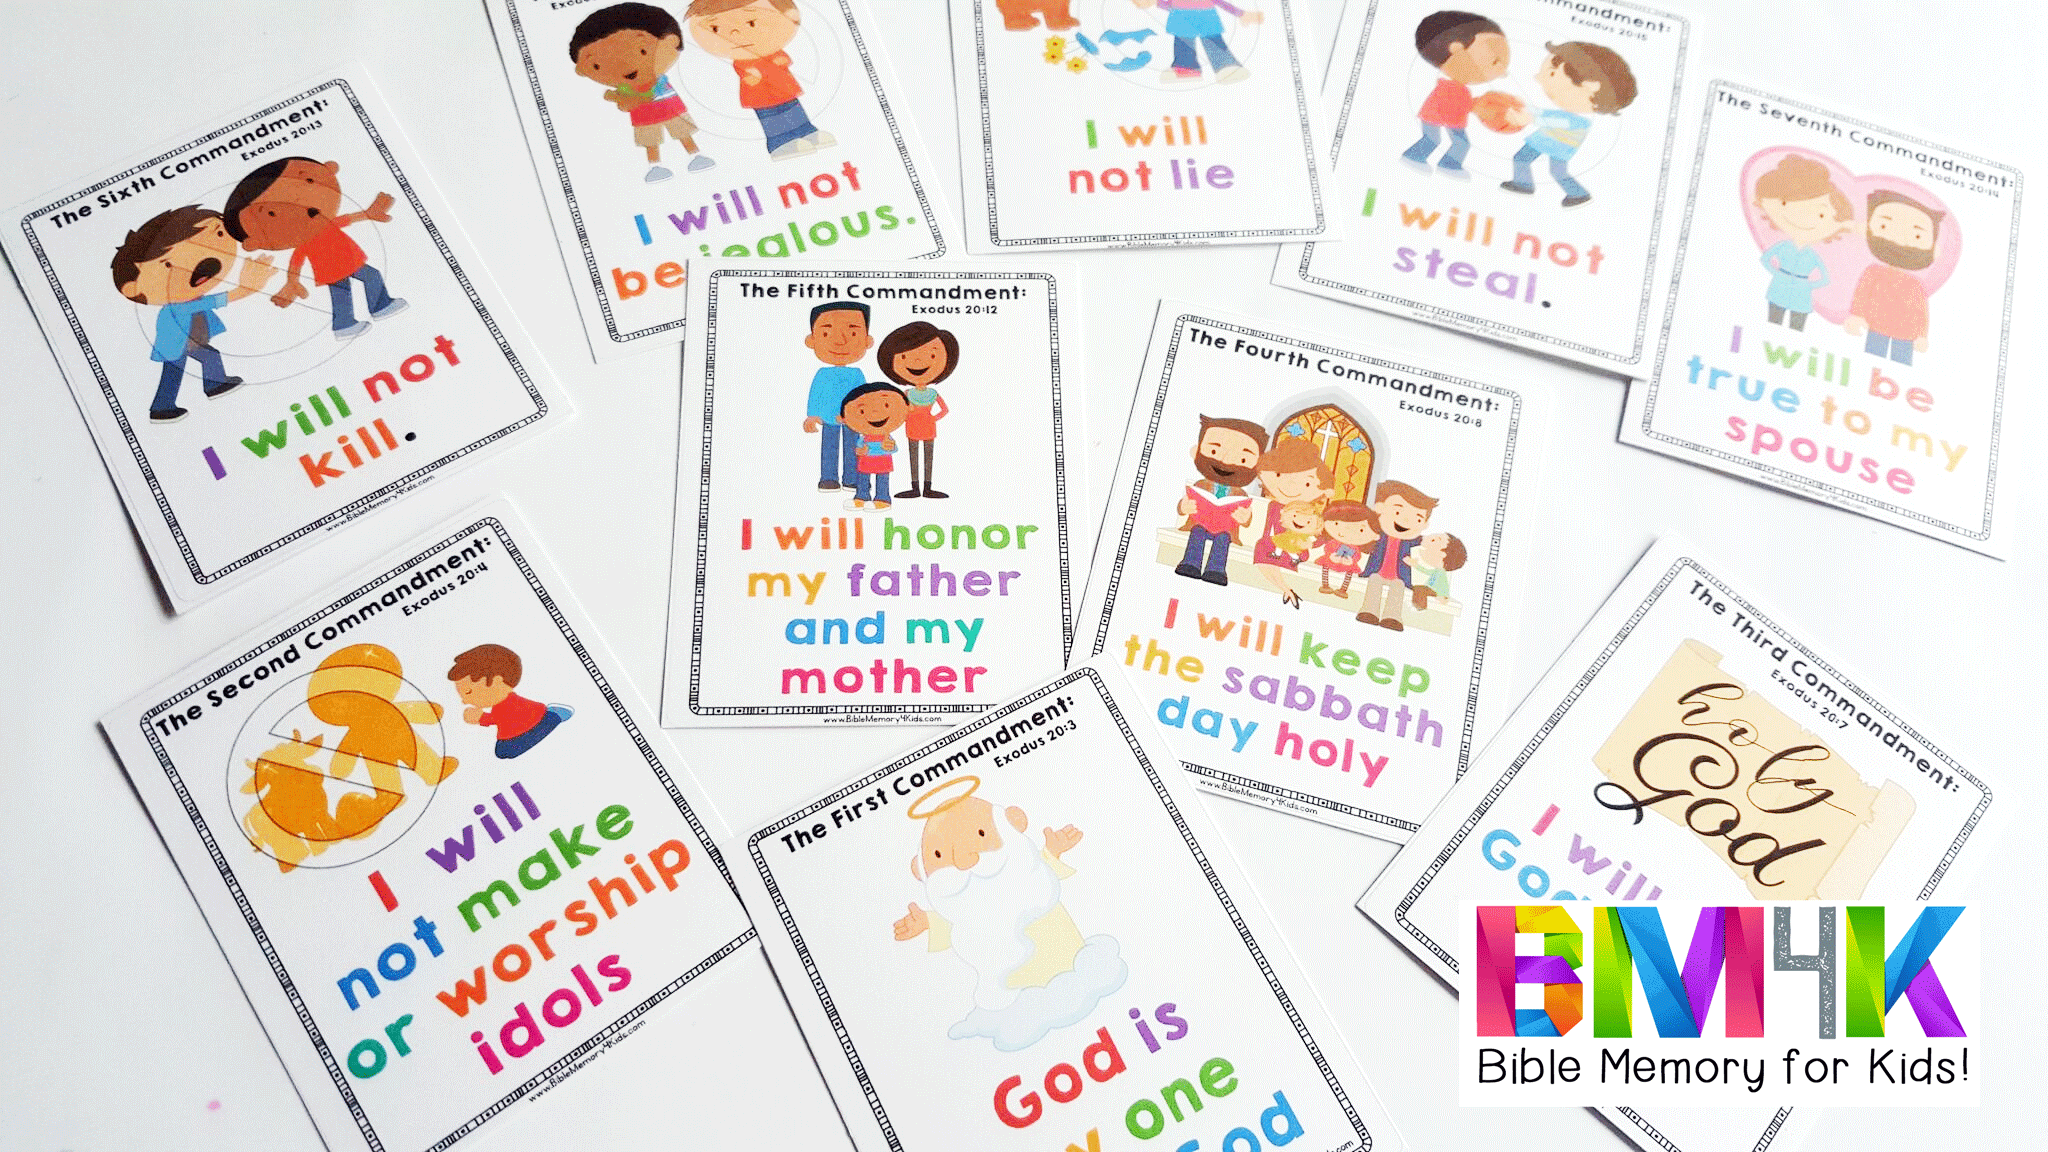 image about 10 Commandments for Kids Printable referred to as 10 Commandments for Little ones